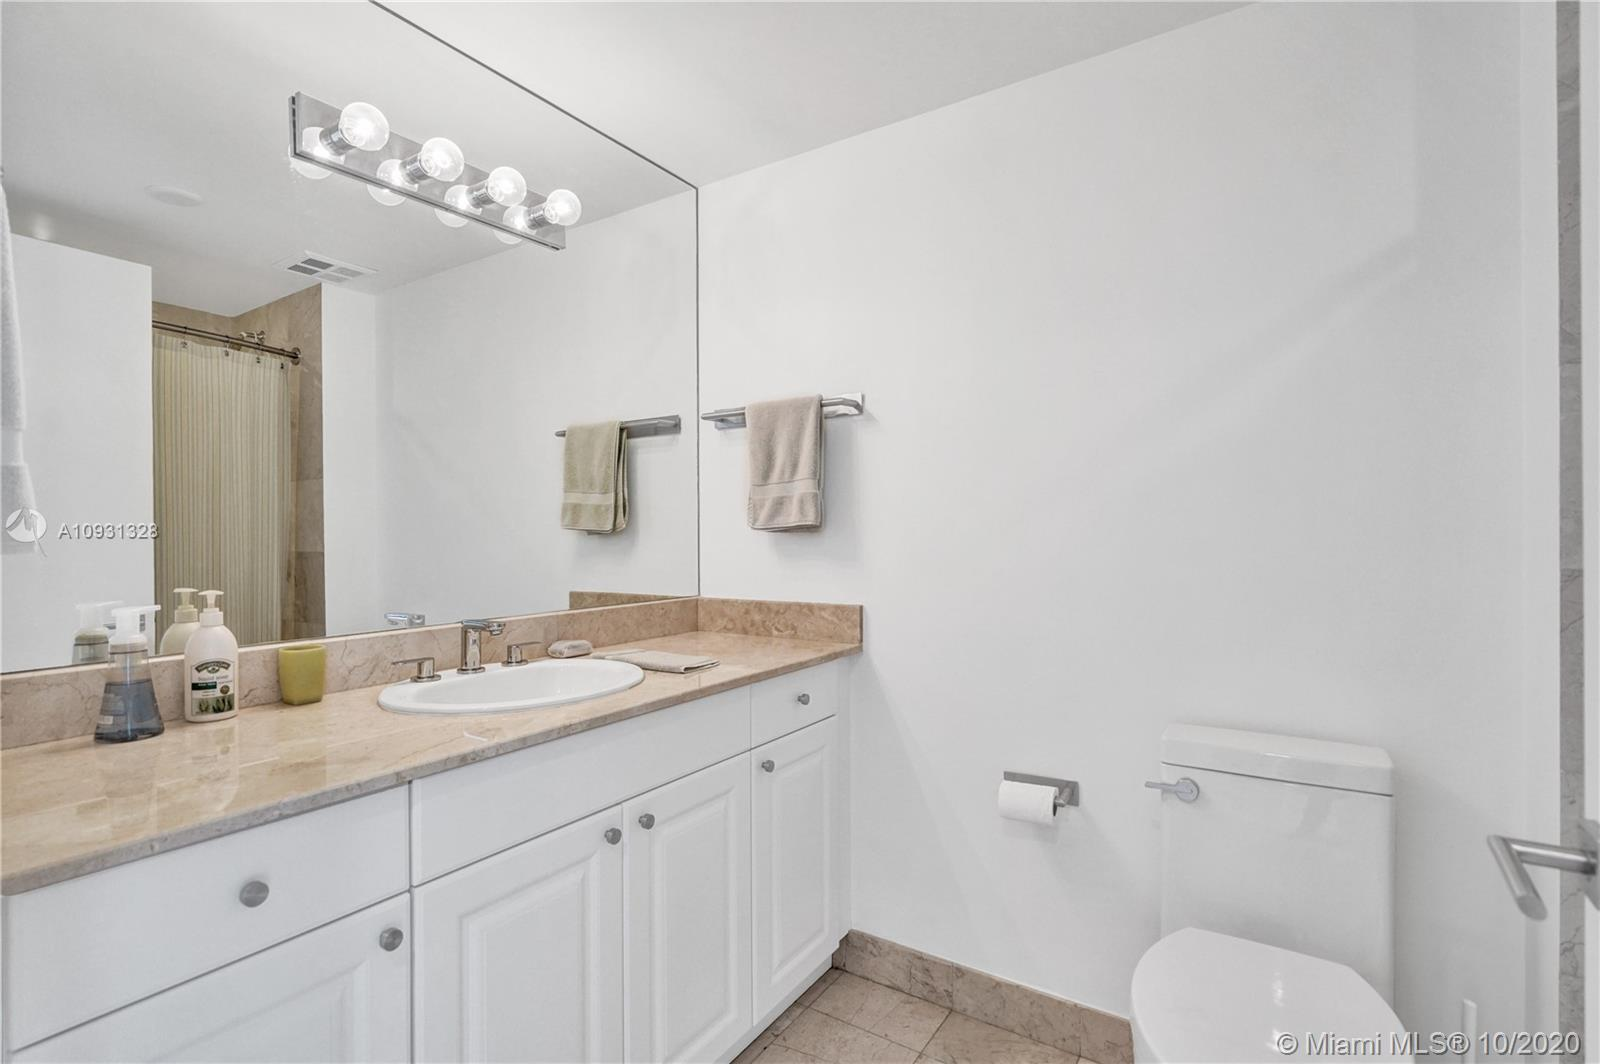 Photo of 20201 Country Club Dr #2407, Aventura, Florida, 33180 - Second bedroom.